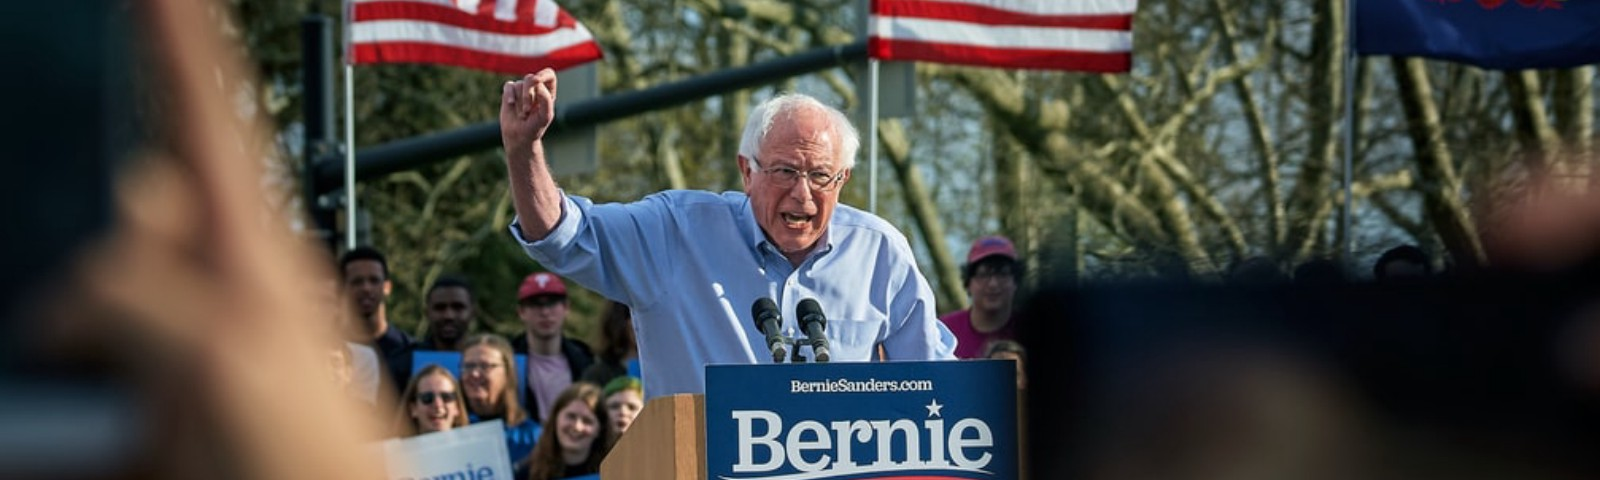 Bernie Sanders standing at a podium during a rally